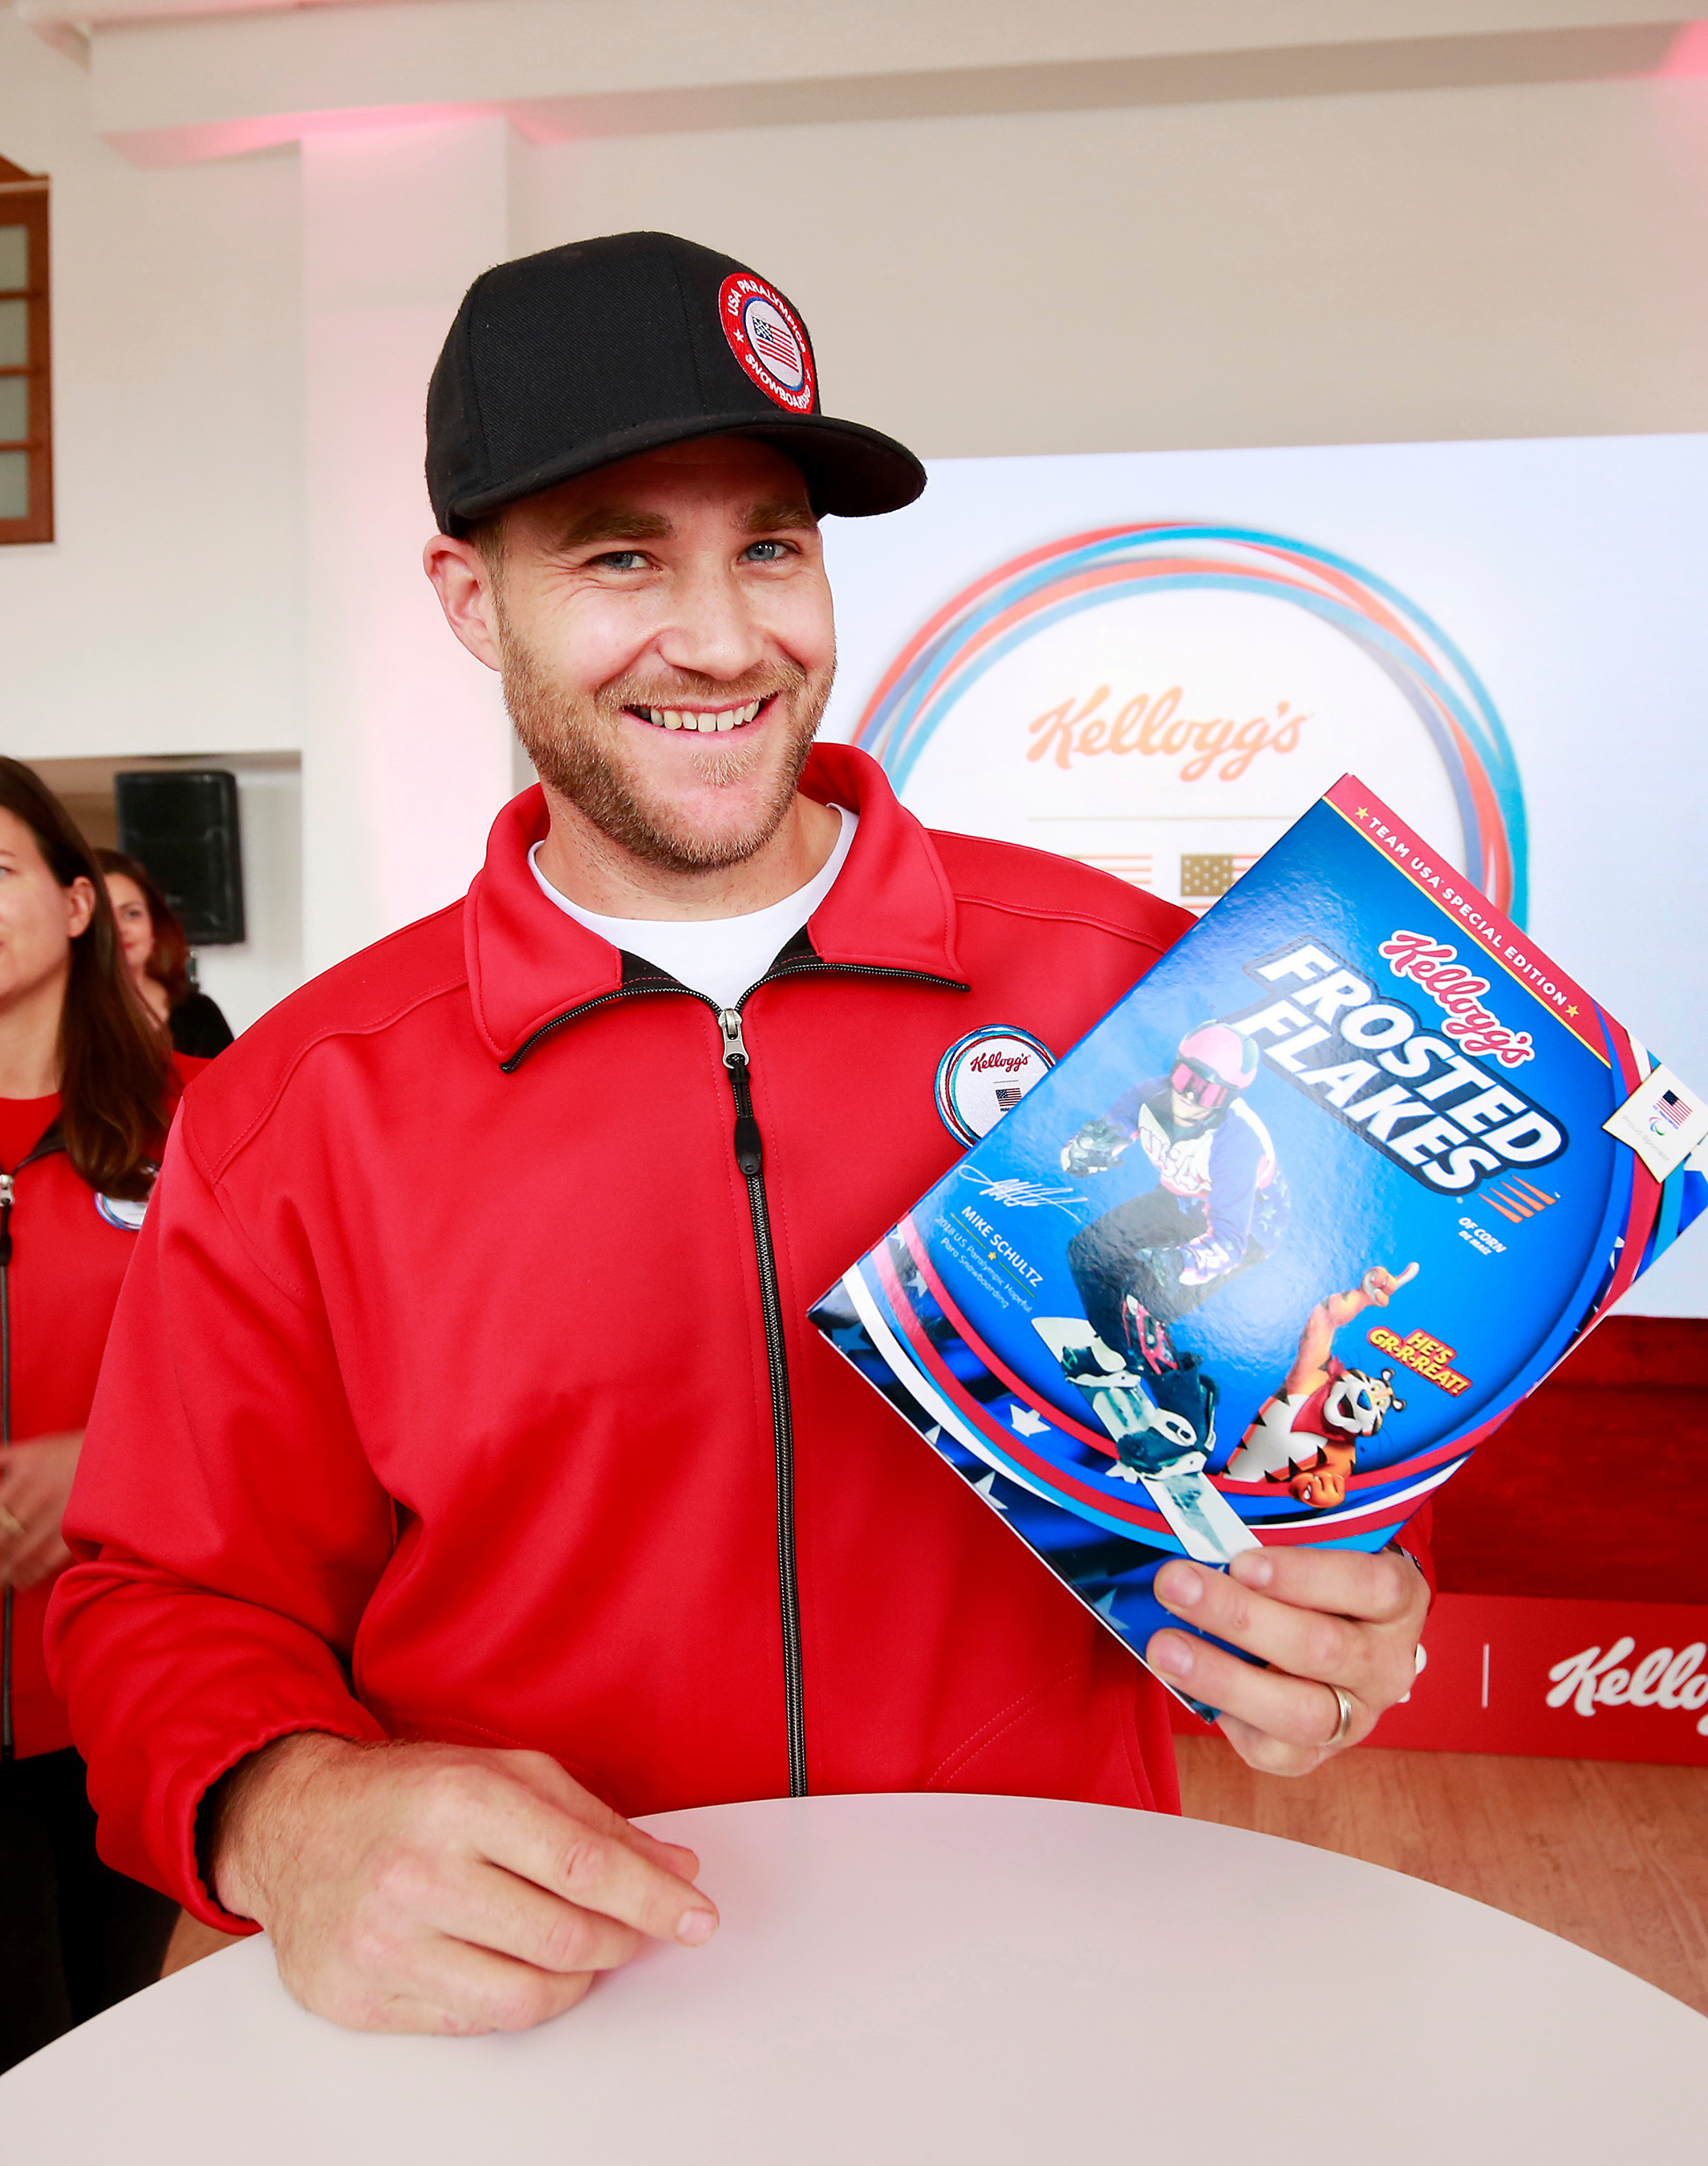 U.S. Paralympic Hopeful, Mike Schultz, sees his face on a Kellogg's cereal box for the first time at the Team Kellogg's 100 Days Out celebration.